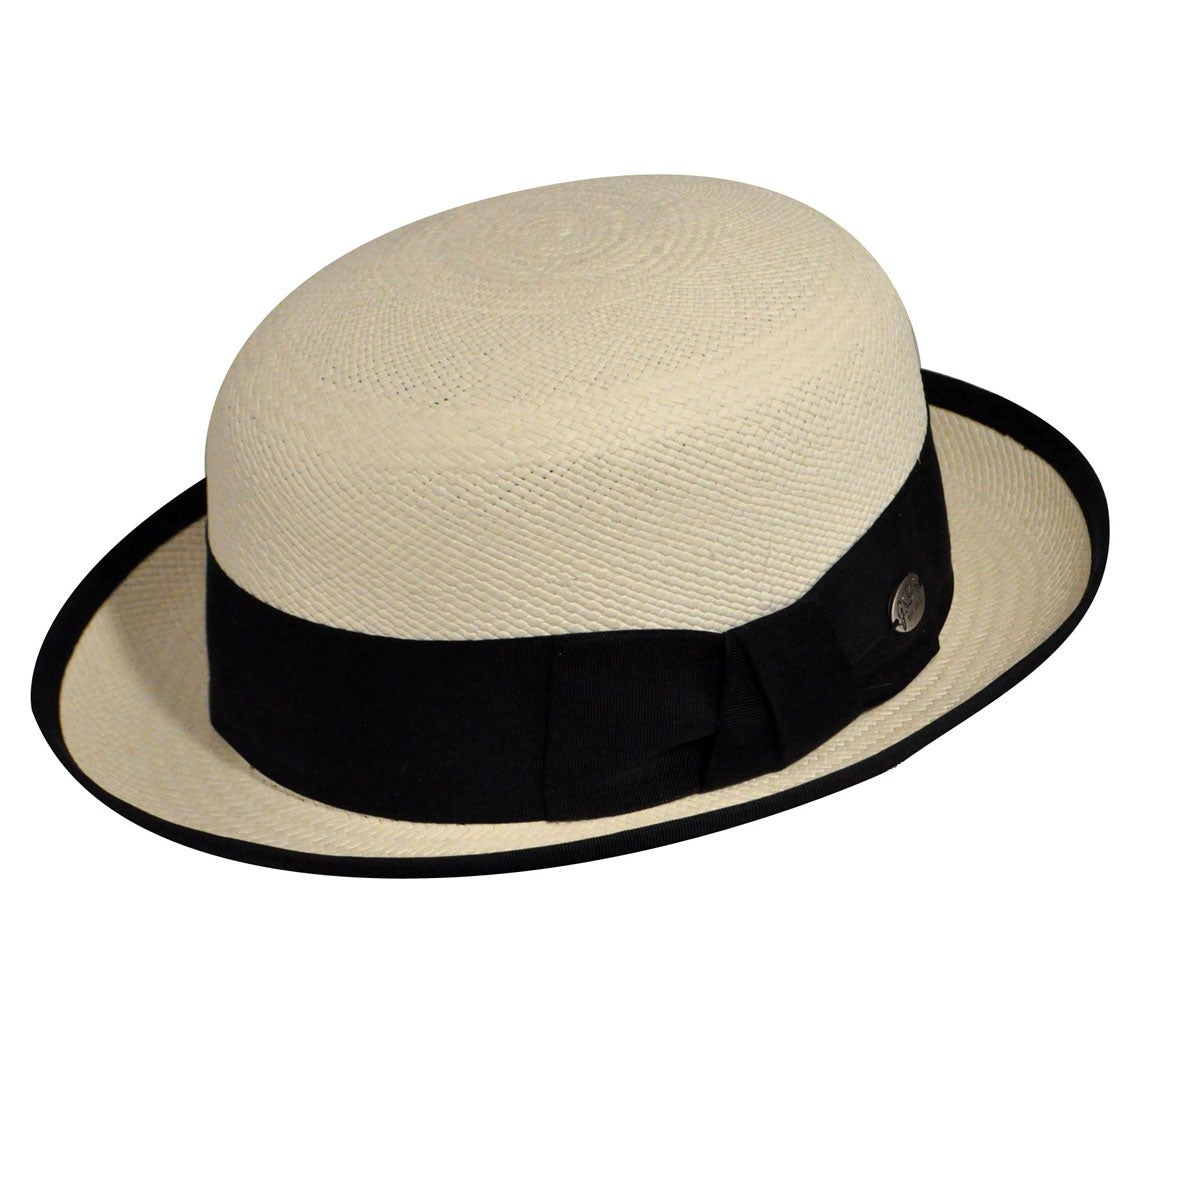 New Edwardian Style Men's Hats 1900-1920 Chaplin Bowler P2i $150.00 AT vintagedancer.com